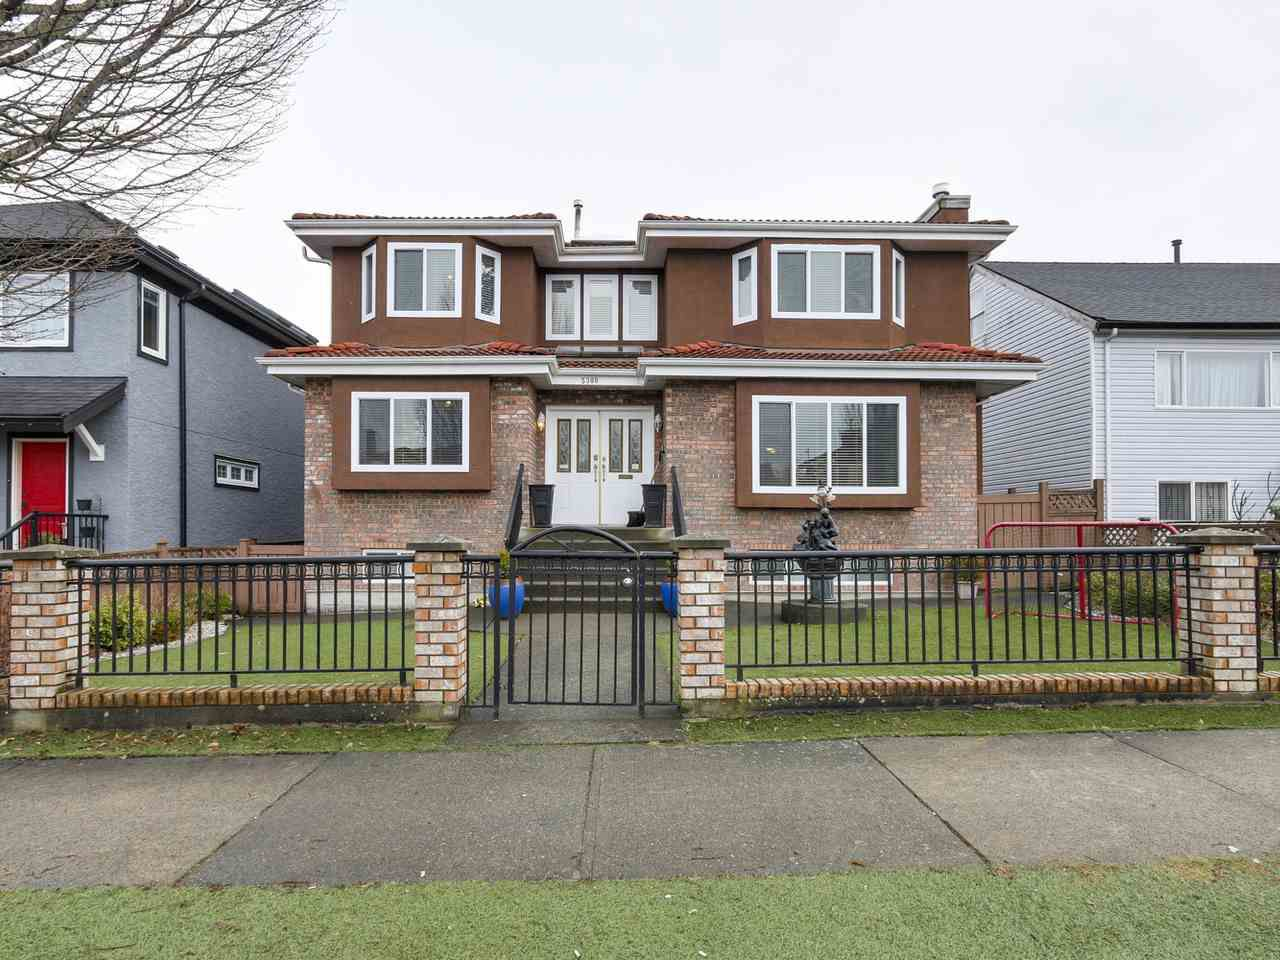 Main Photo: 5308 ROSS STREET in Vancouver: Knight House for sale (Vancouver East)  : MLS®# R2140103